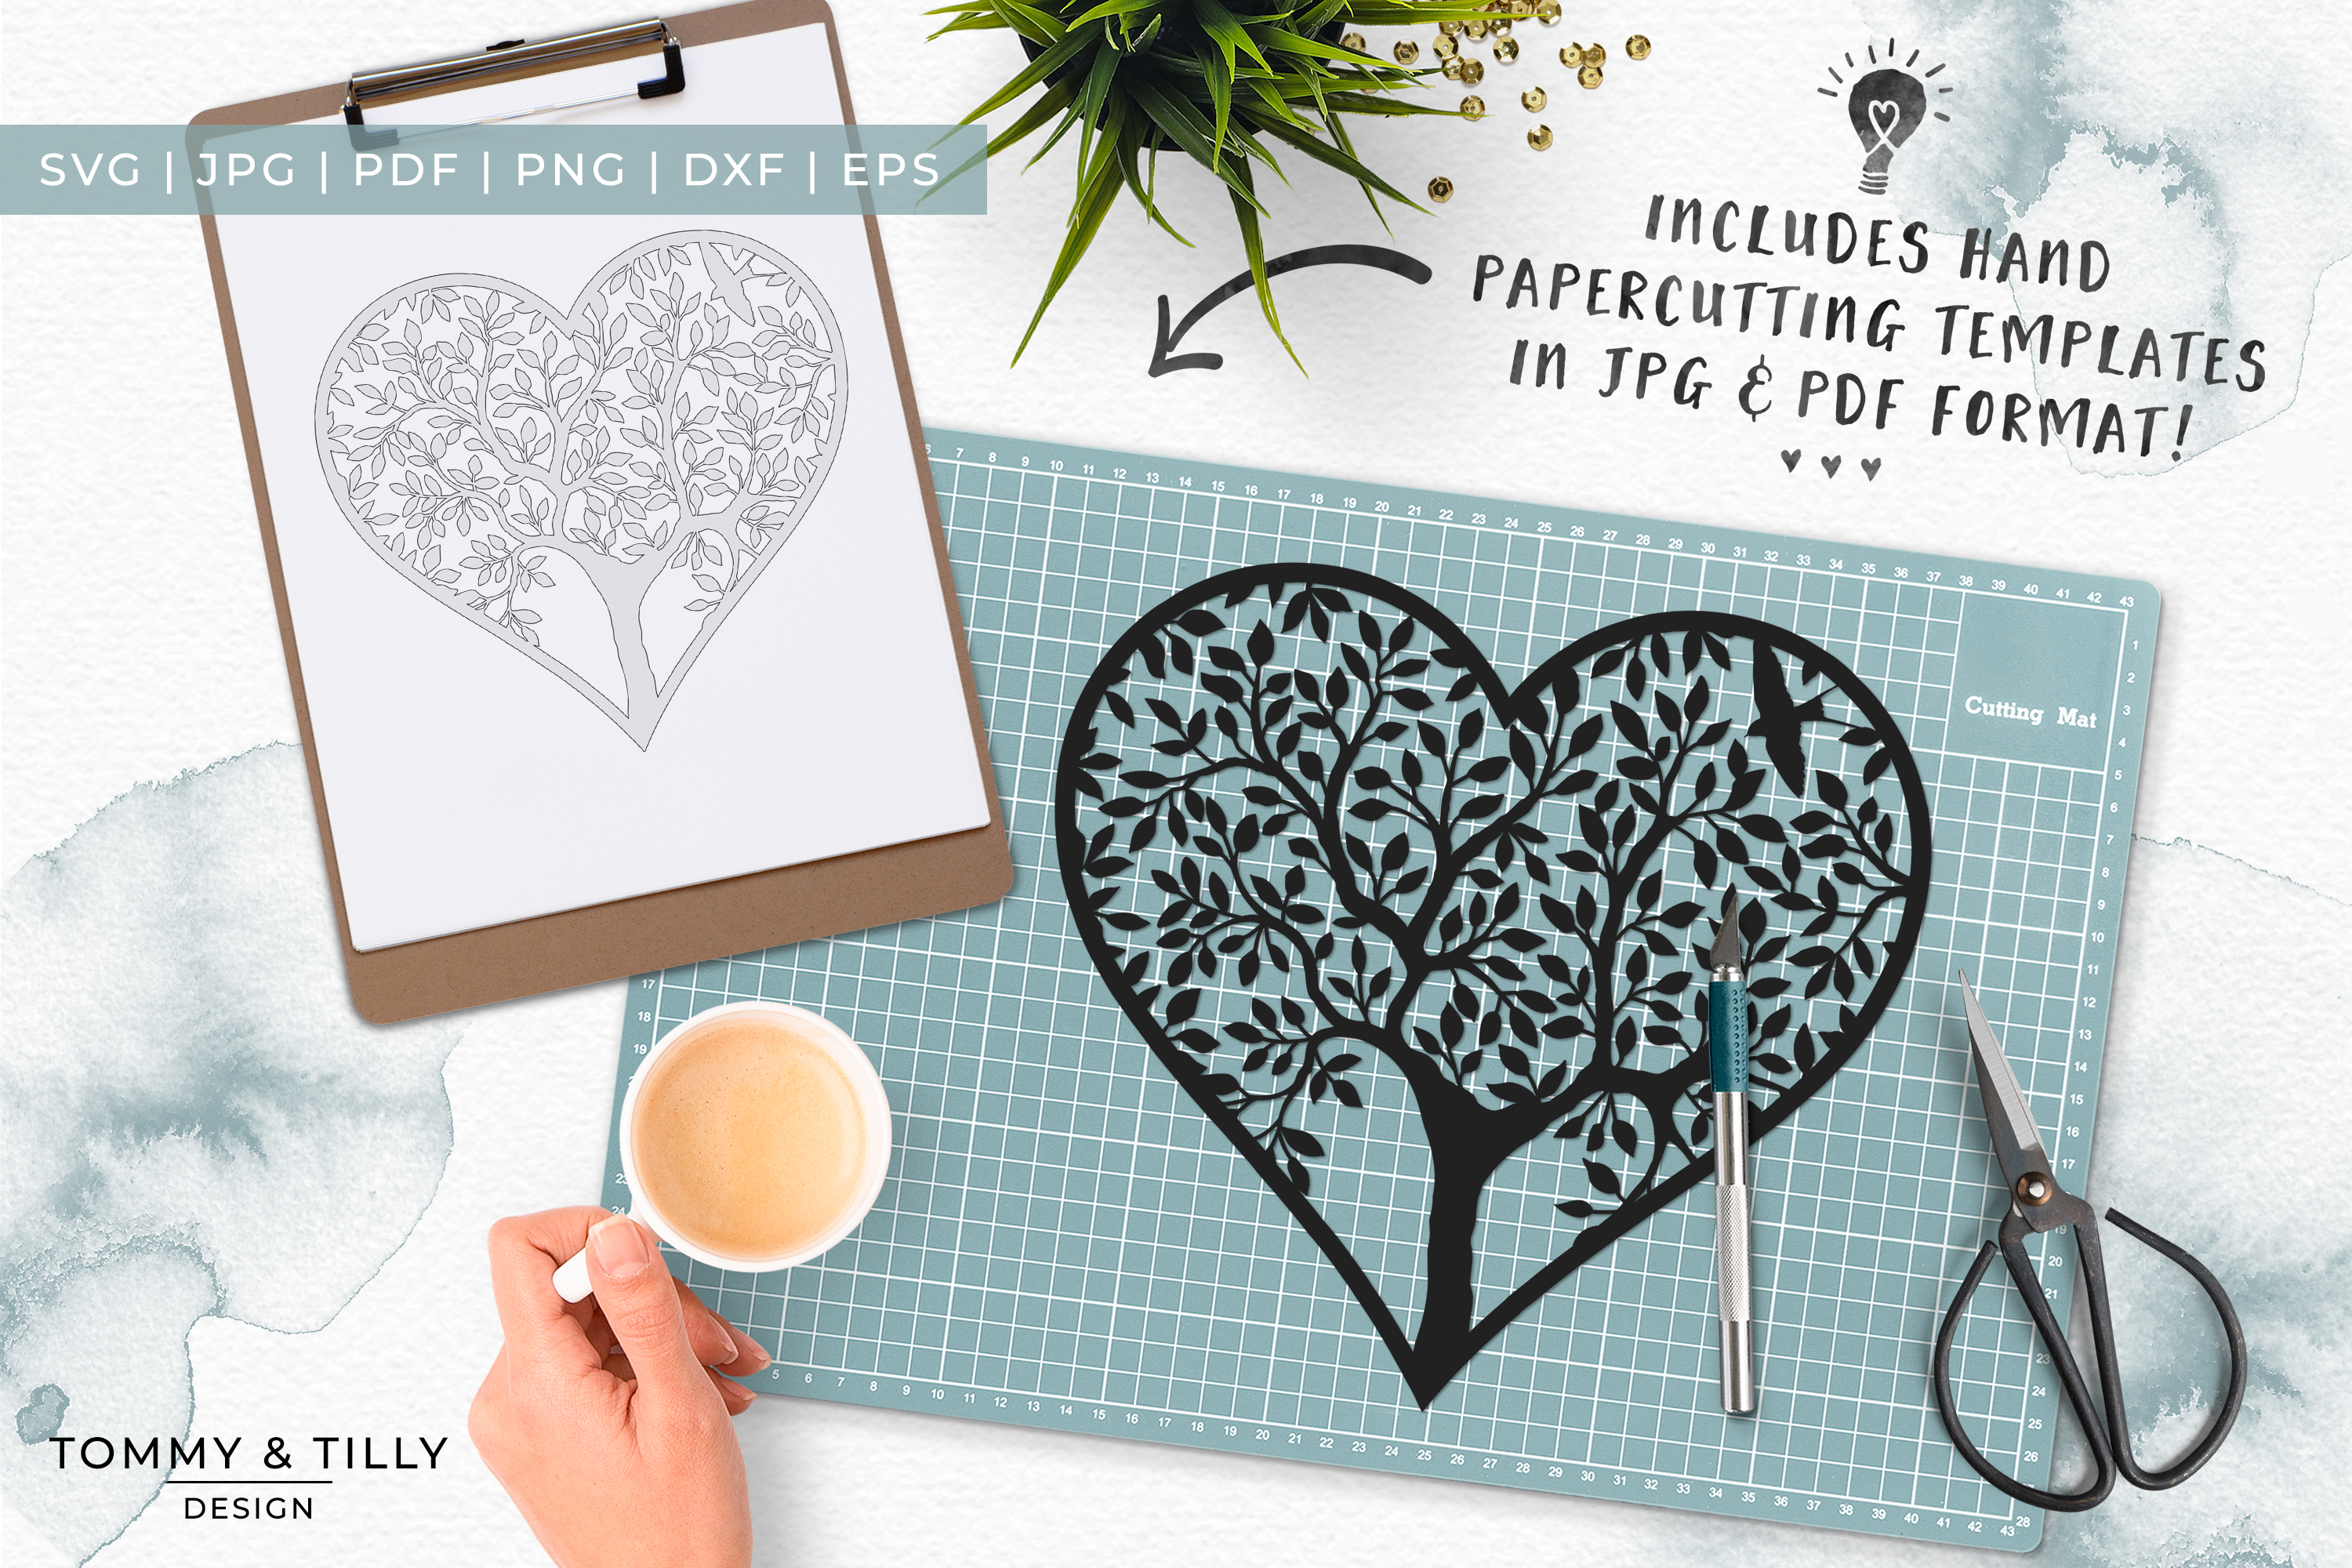 Heart Tree - Papercut Template SVG EPS DXF PNG PDF JPG example image 5